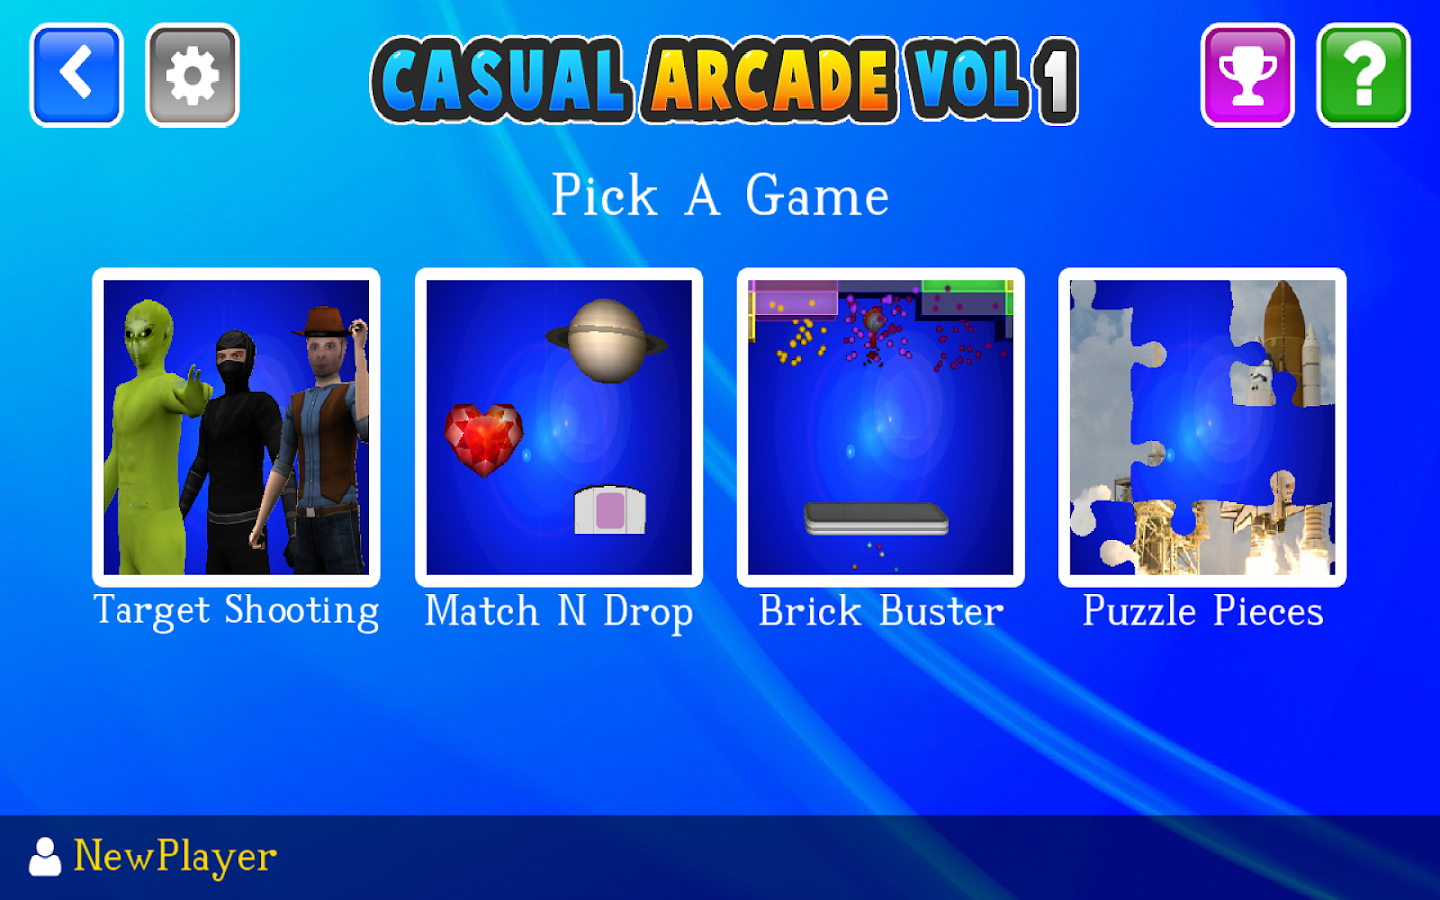 Casual Arcade Vol. 1 Screenshot 0